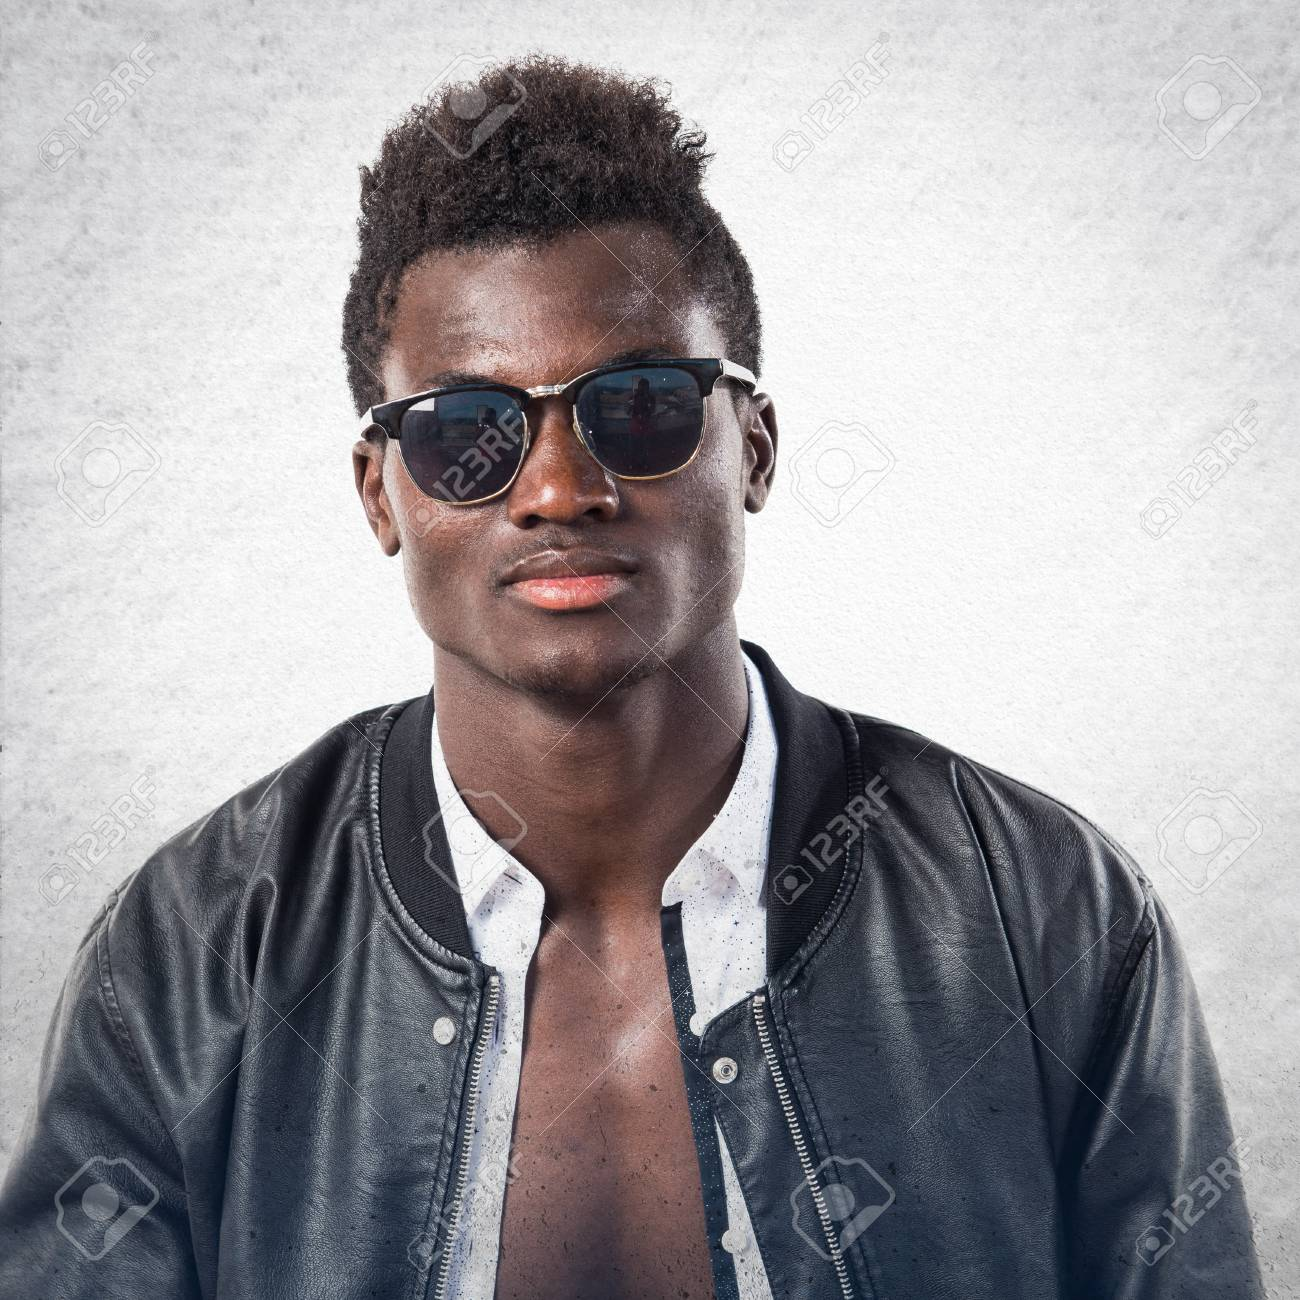 51f243220a Handsome black man with sunglasses posing in studio Stock Photo - 70916698